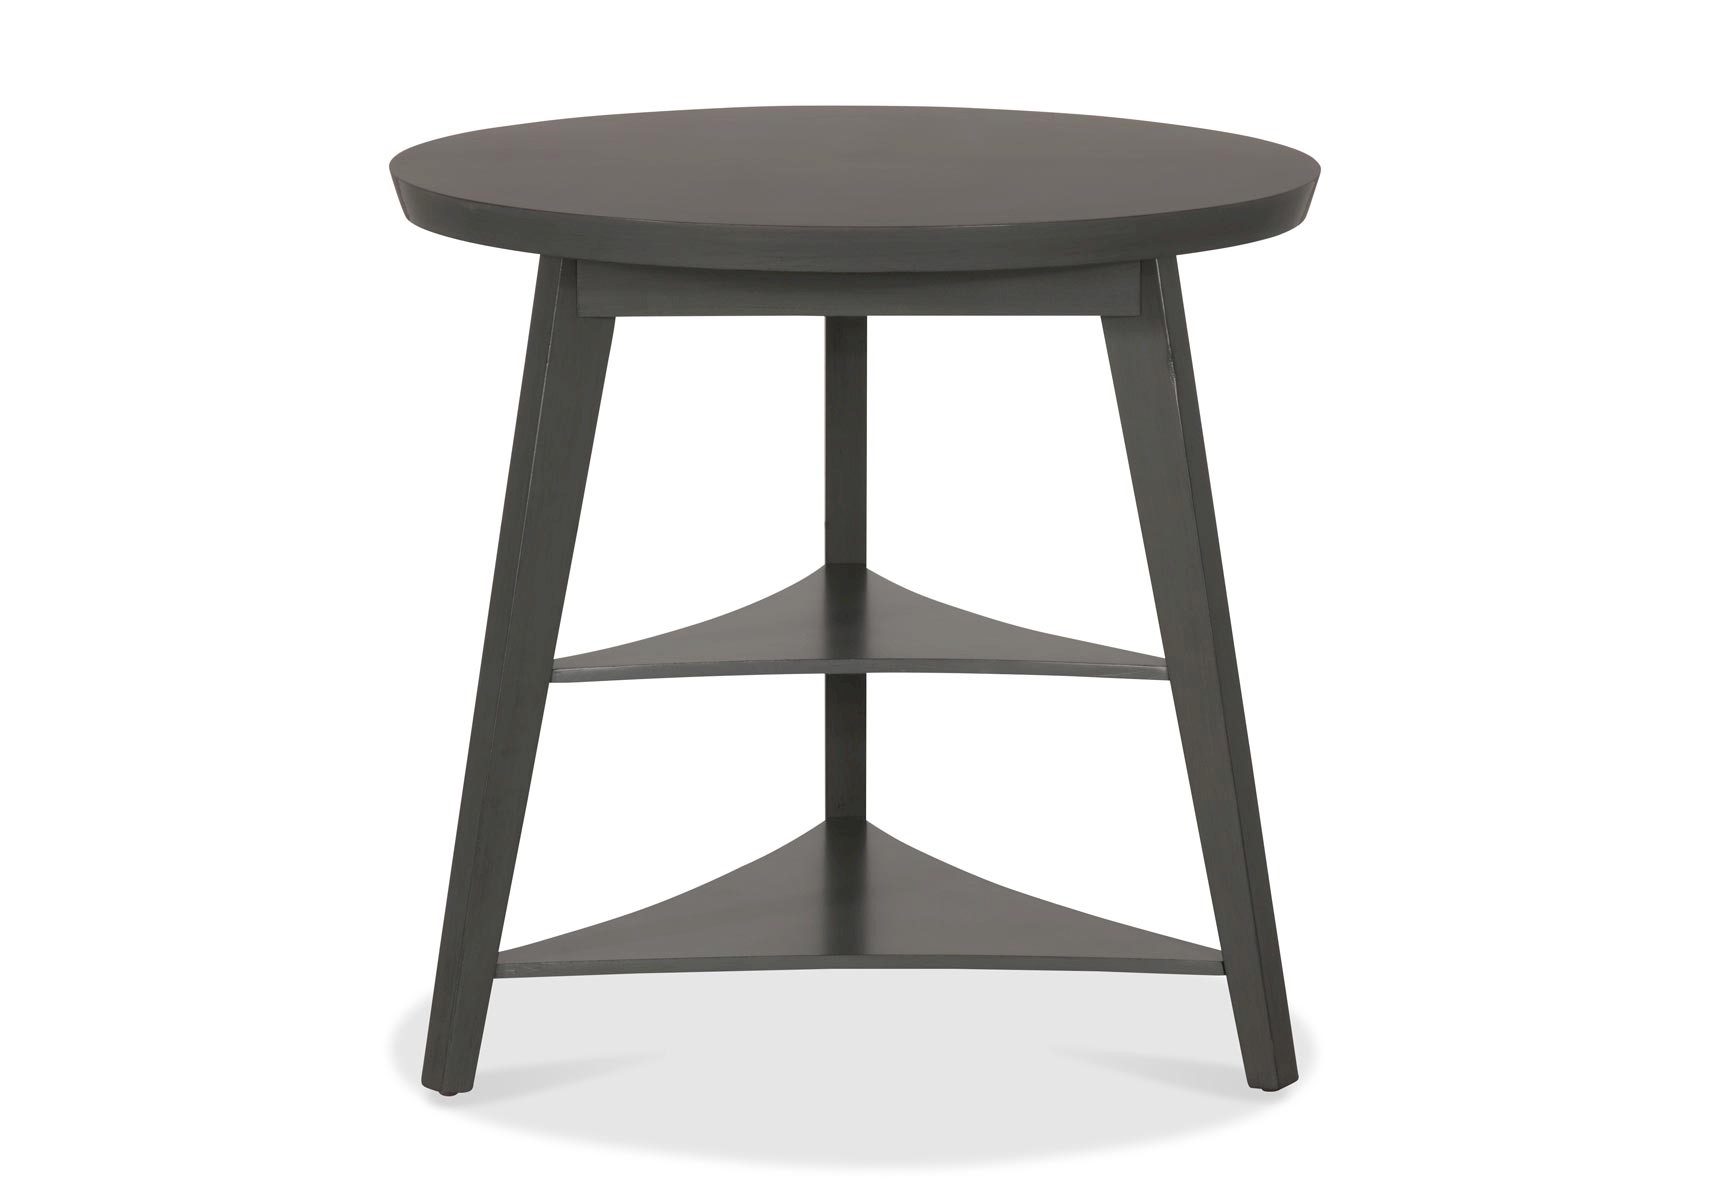 lacks tier accent table tiered metal bottle wine rack outdoor dining set cherry oak end tables vintage scandinavian chair marble tops swivel coffee folding white round nesting